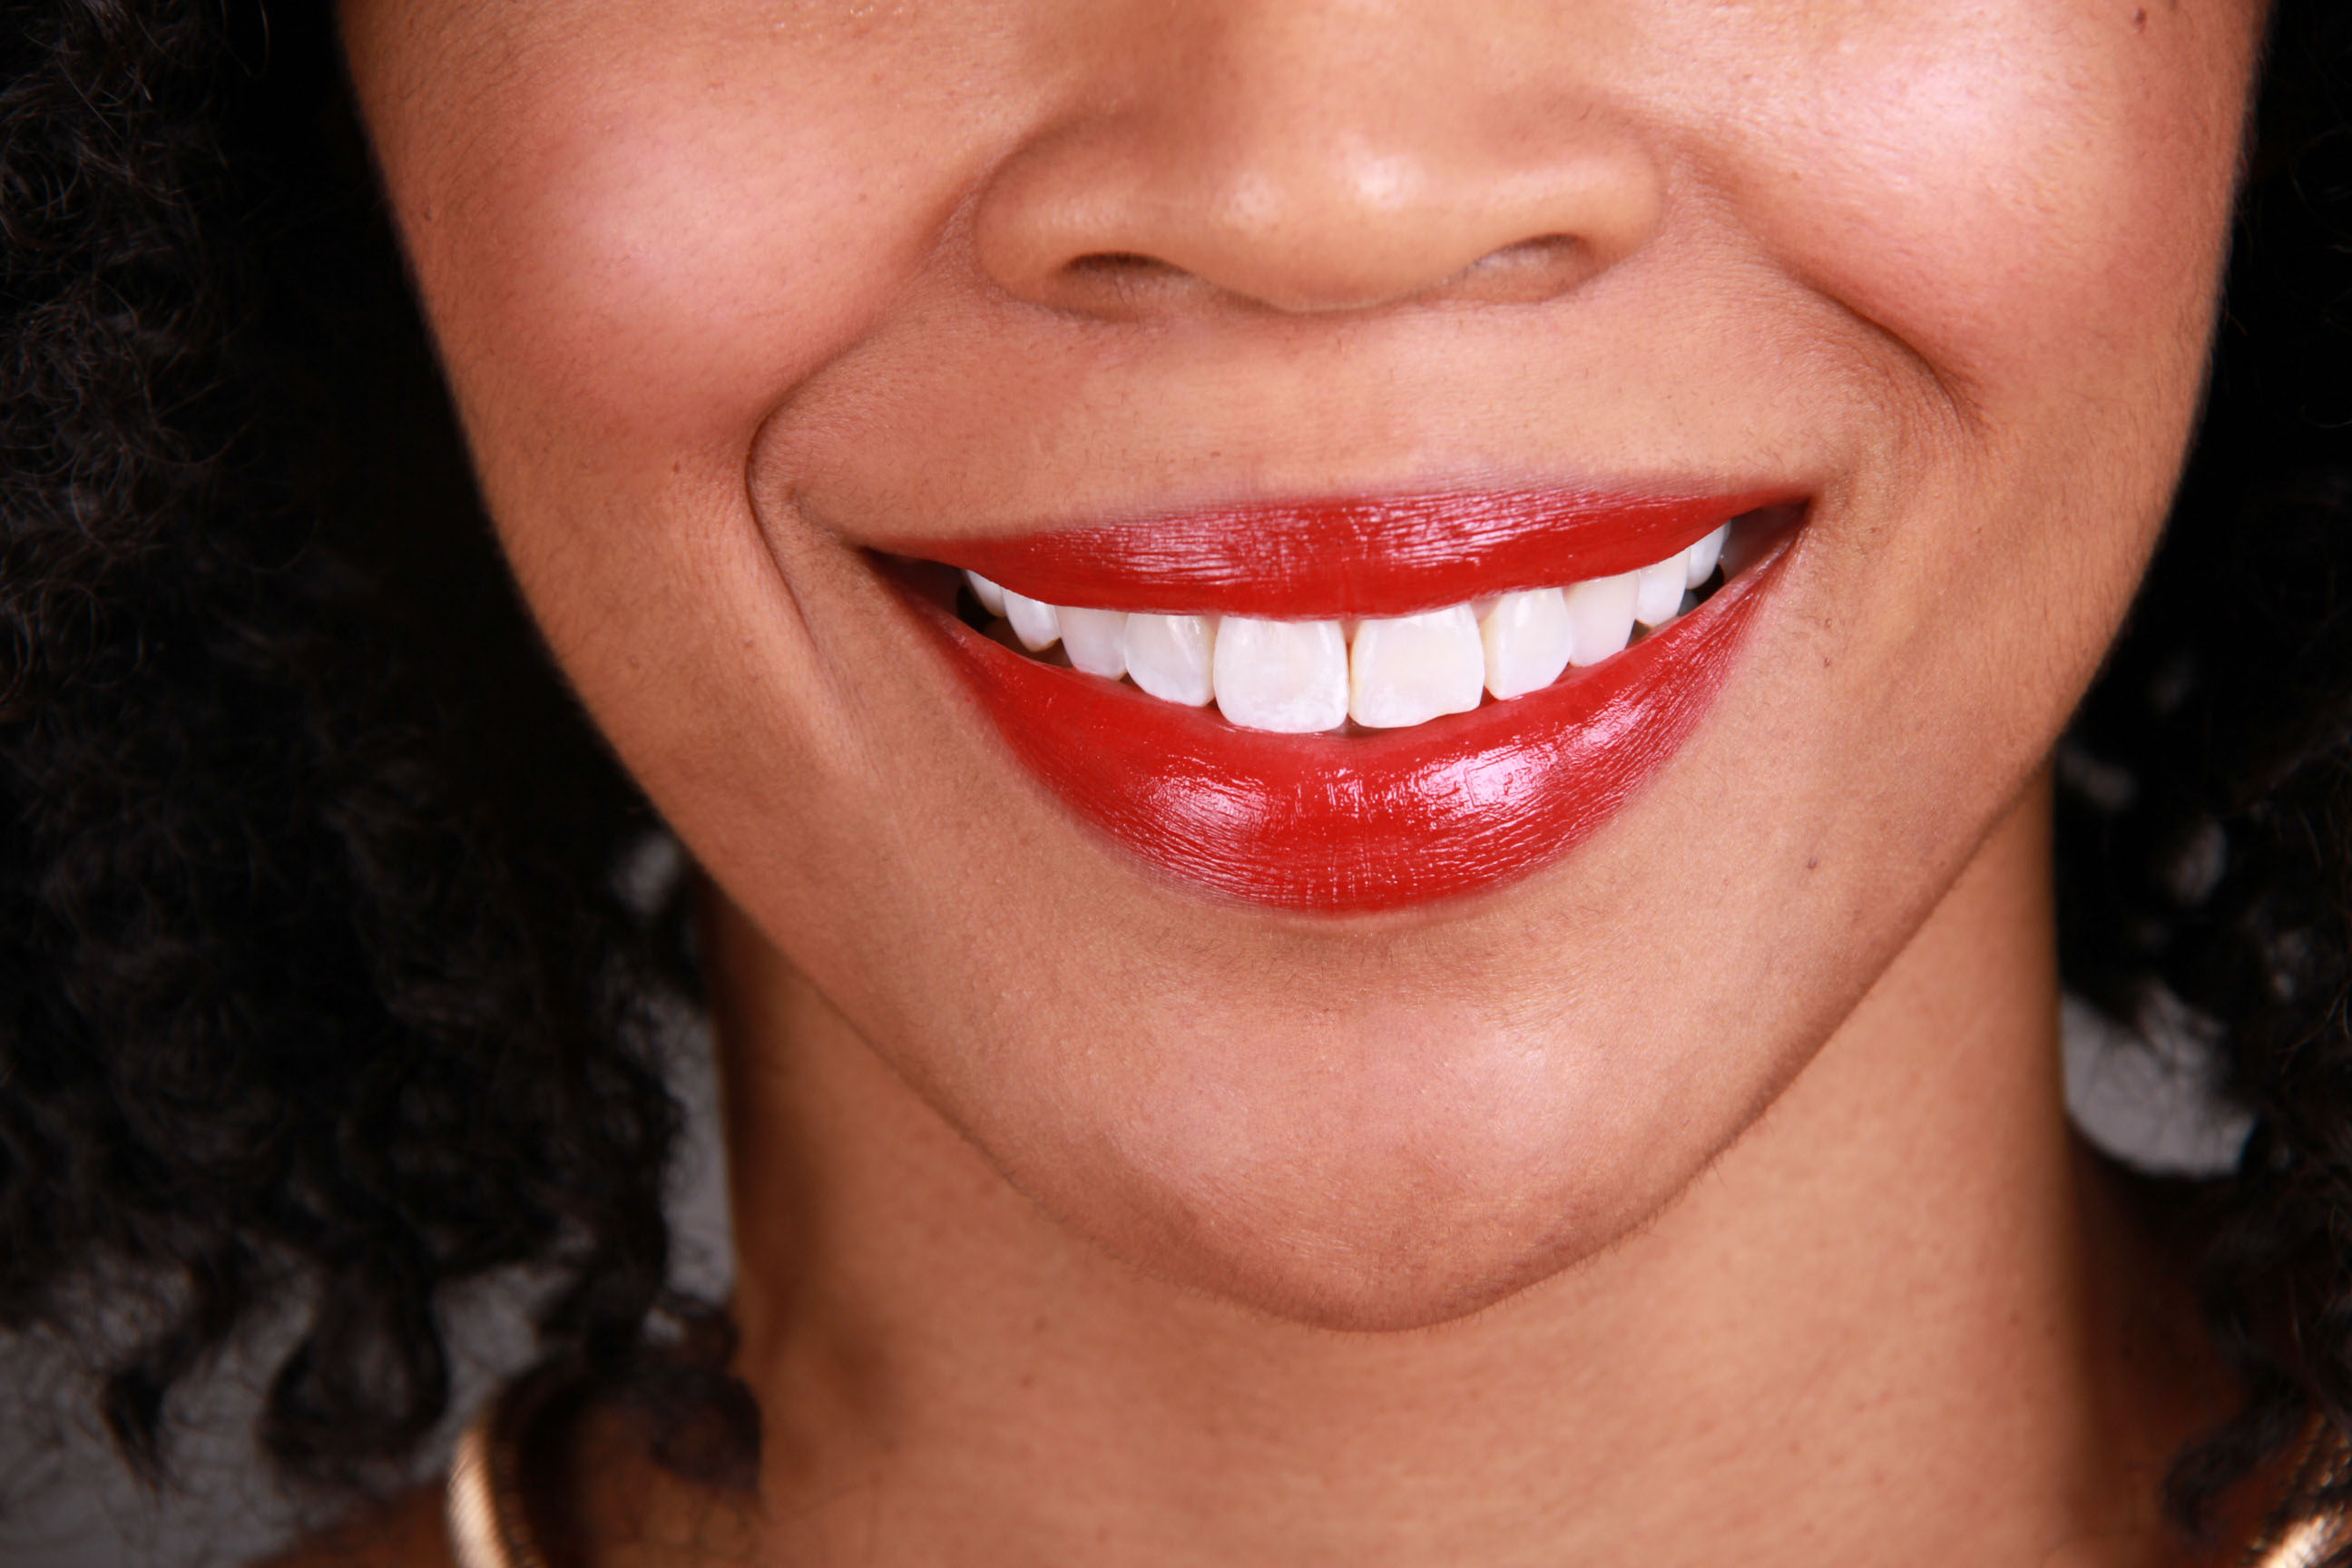 Iris Hill_Lips:Smile4